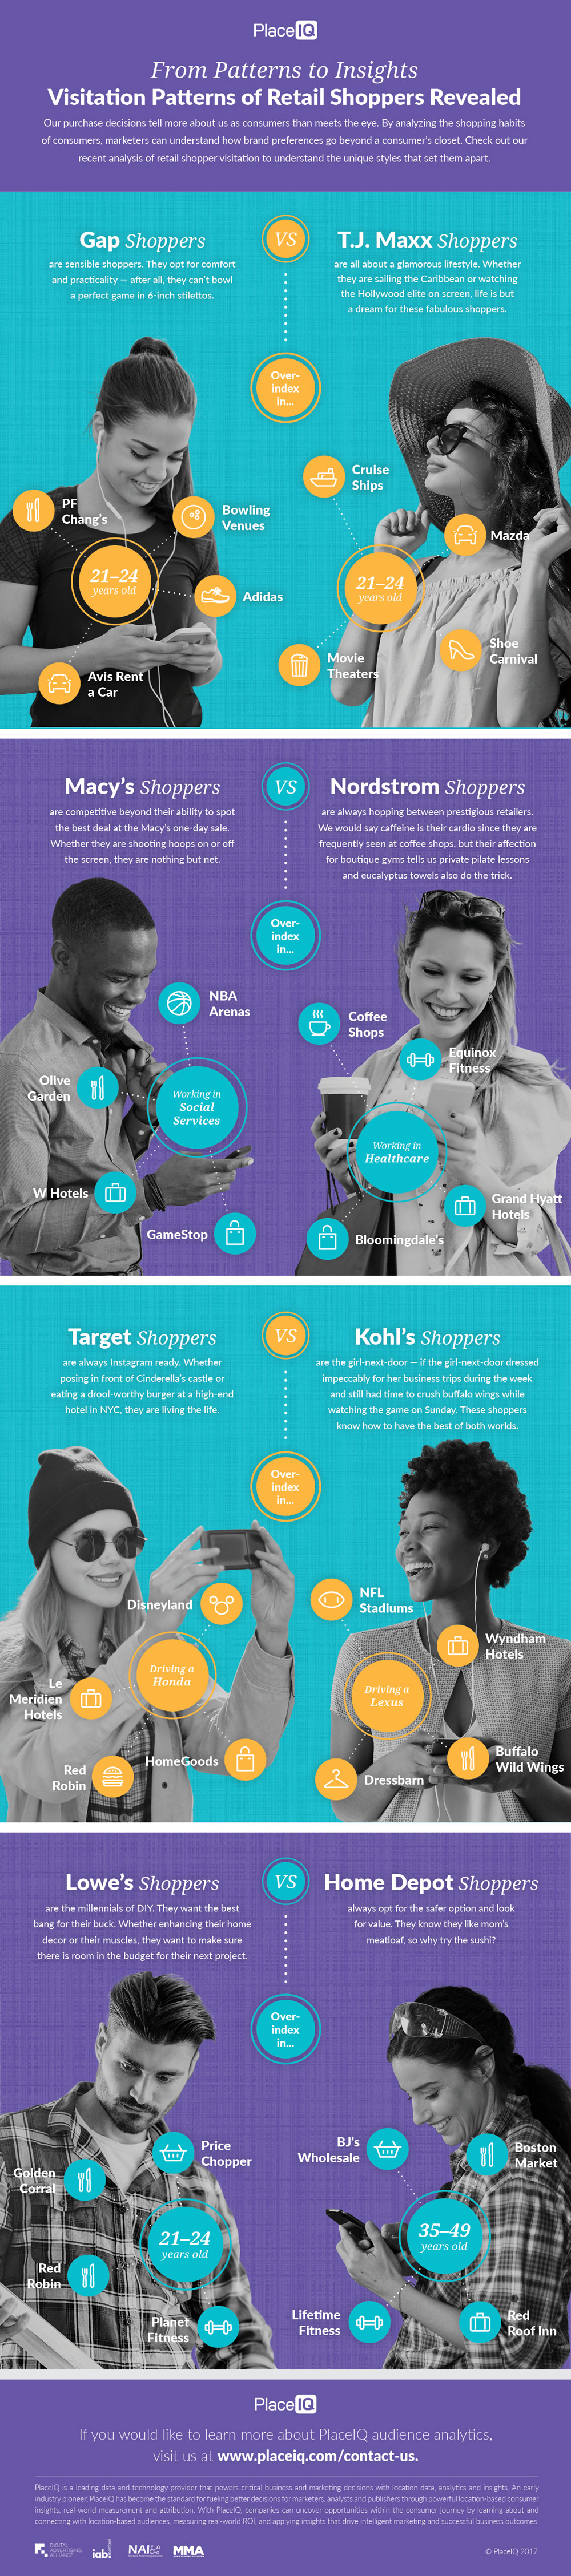 INFOGRAPHIC: From Patterns to Insights - Visitation Patterns of Retail Shoppers Revealed